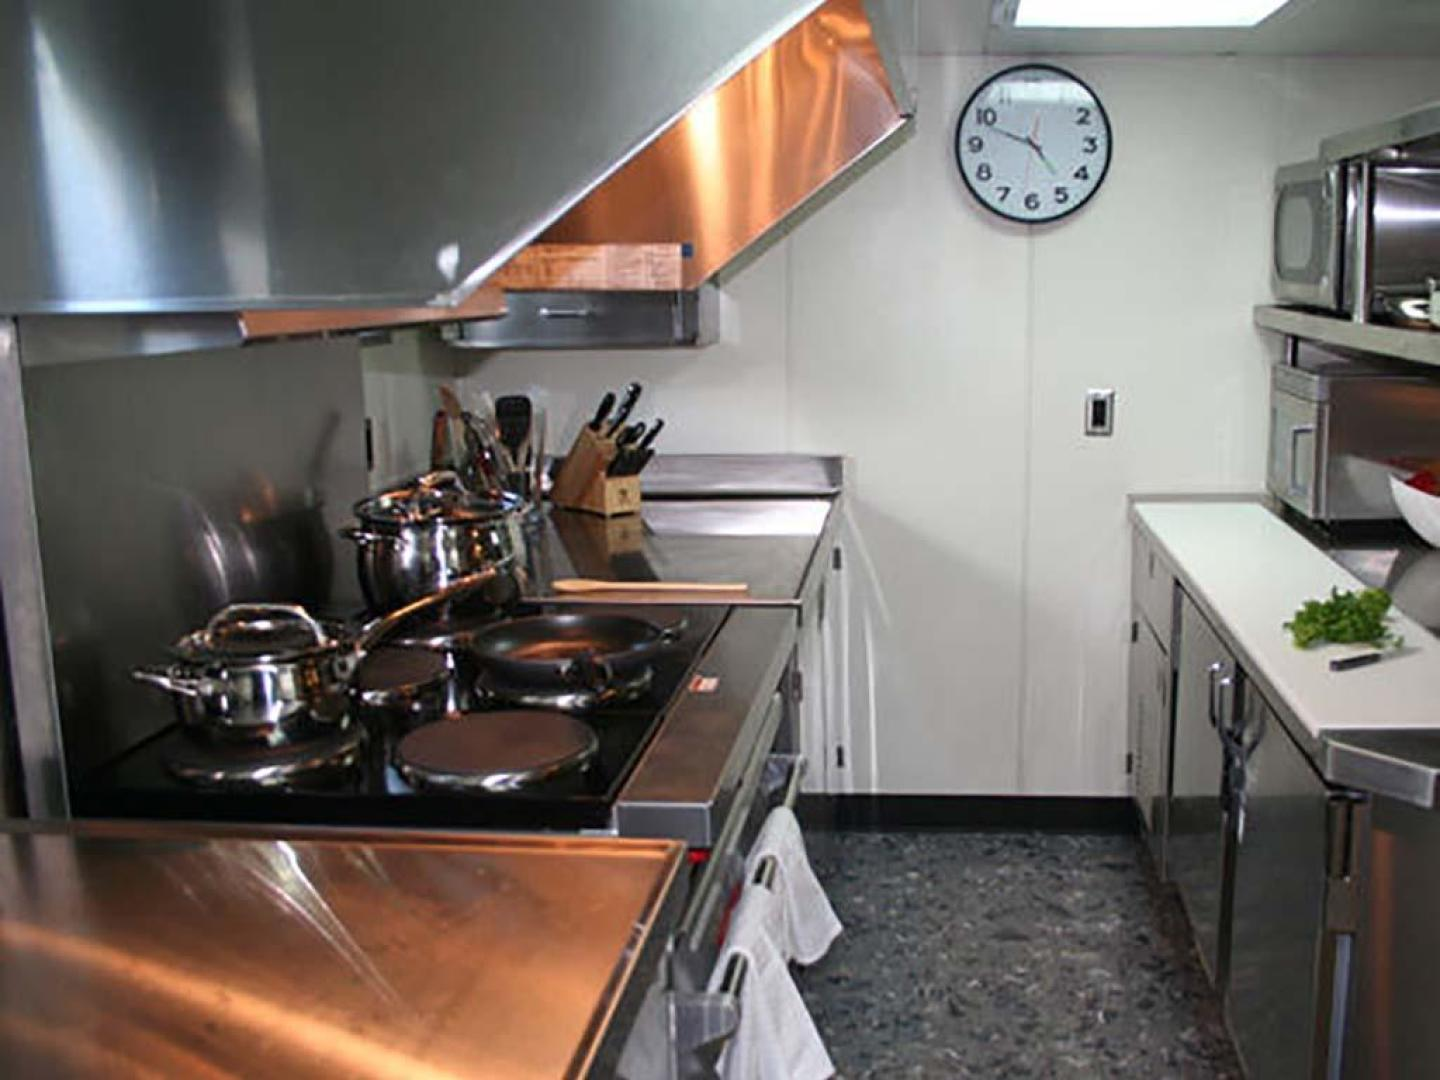 Shadow-Marine Expedition Mothership  Allure Class 2007-Global Ft. Lauderdale-Florida-United States-Stainless Steel Commercial Galley Cooking Area-919047 | Thumbnail